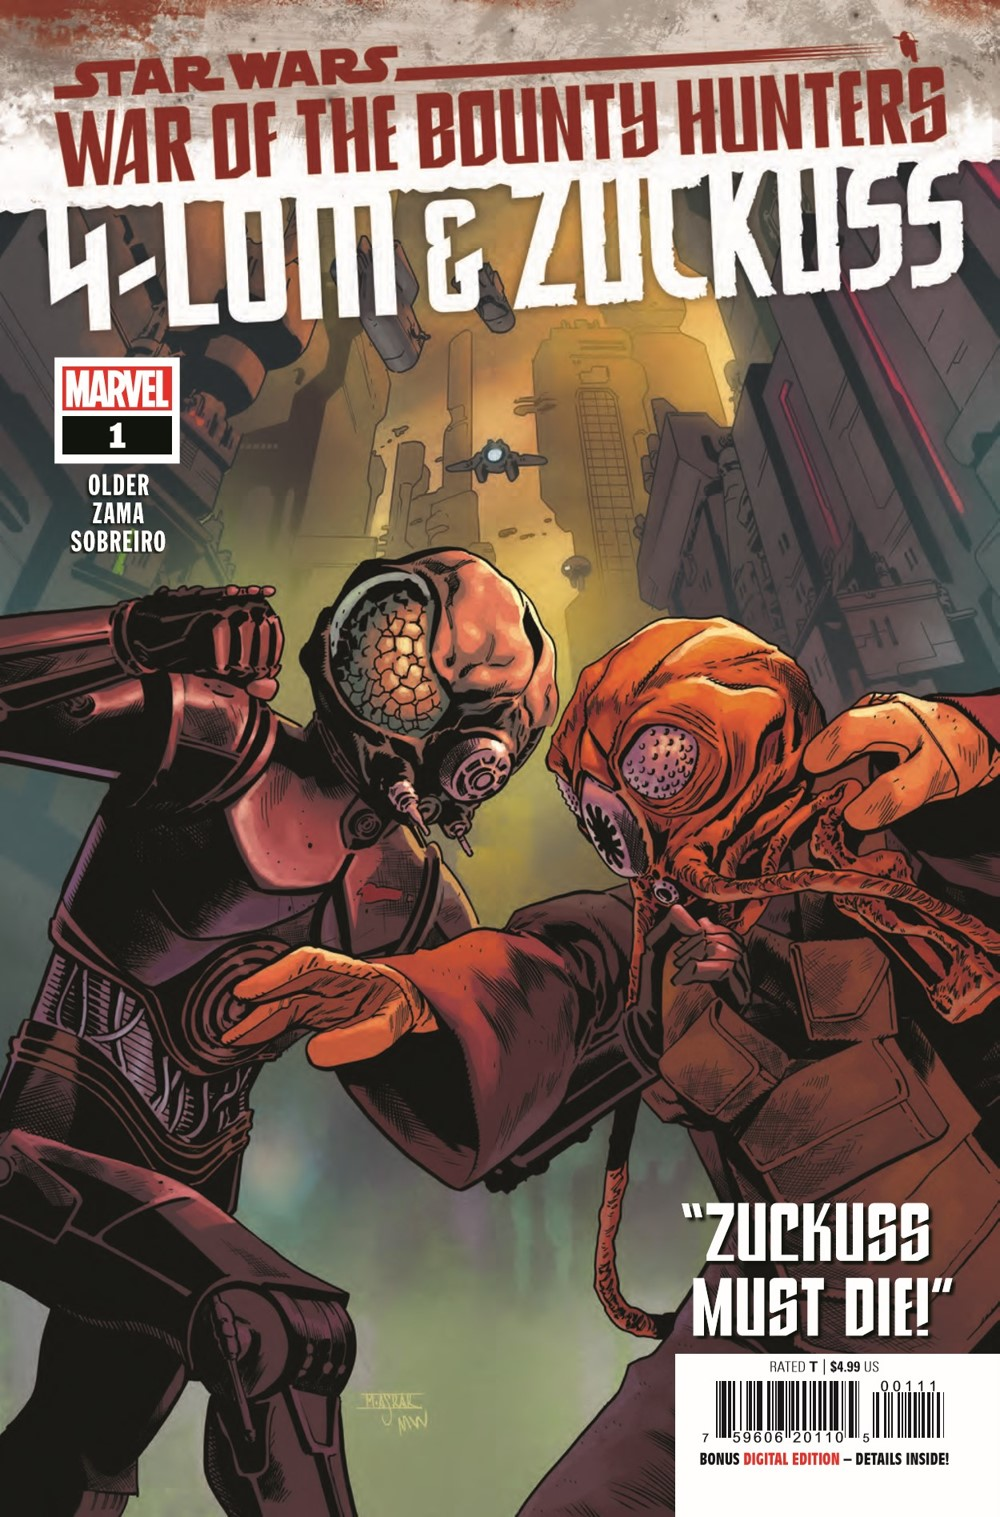 STWWAROTBH4LOMZUCK2021001_Preview-1 ComicList Previews: STAR WARS WAR OF THE BOUNTY HUNTERS 4-LOM AND ZUCKUSS #1